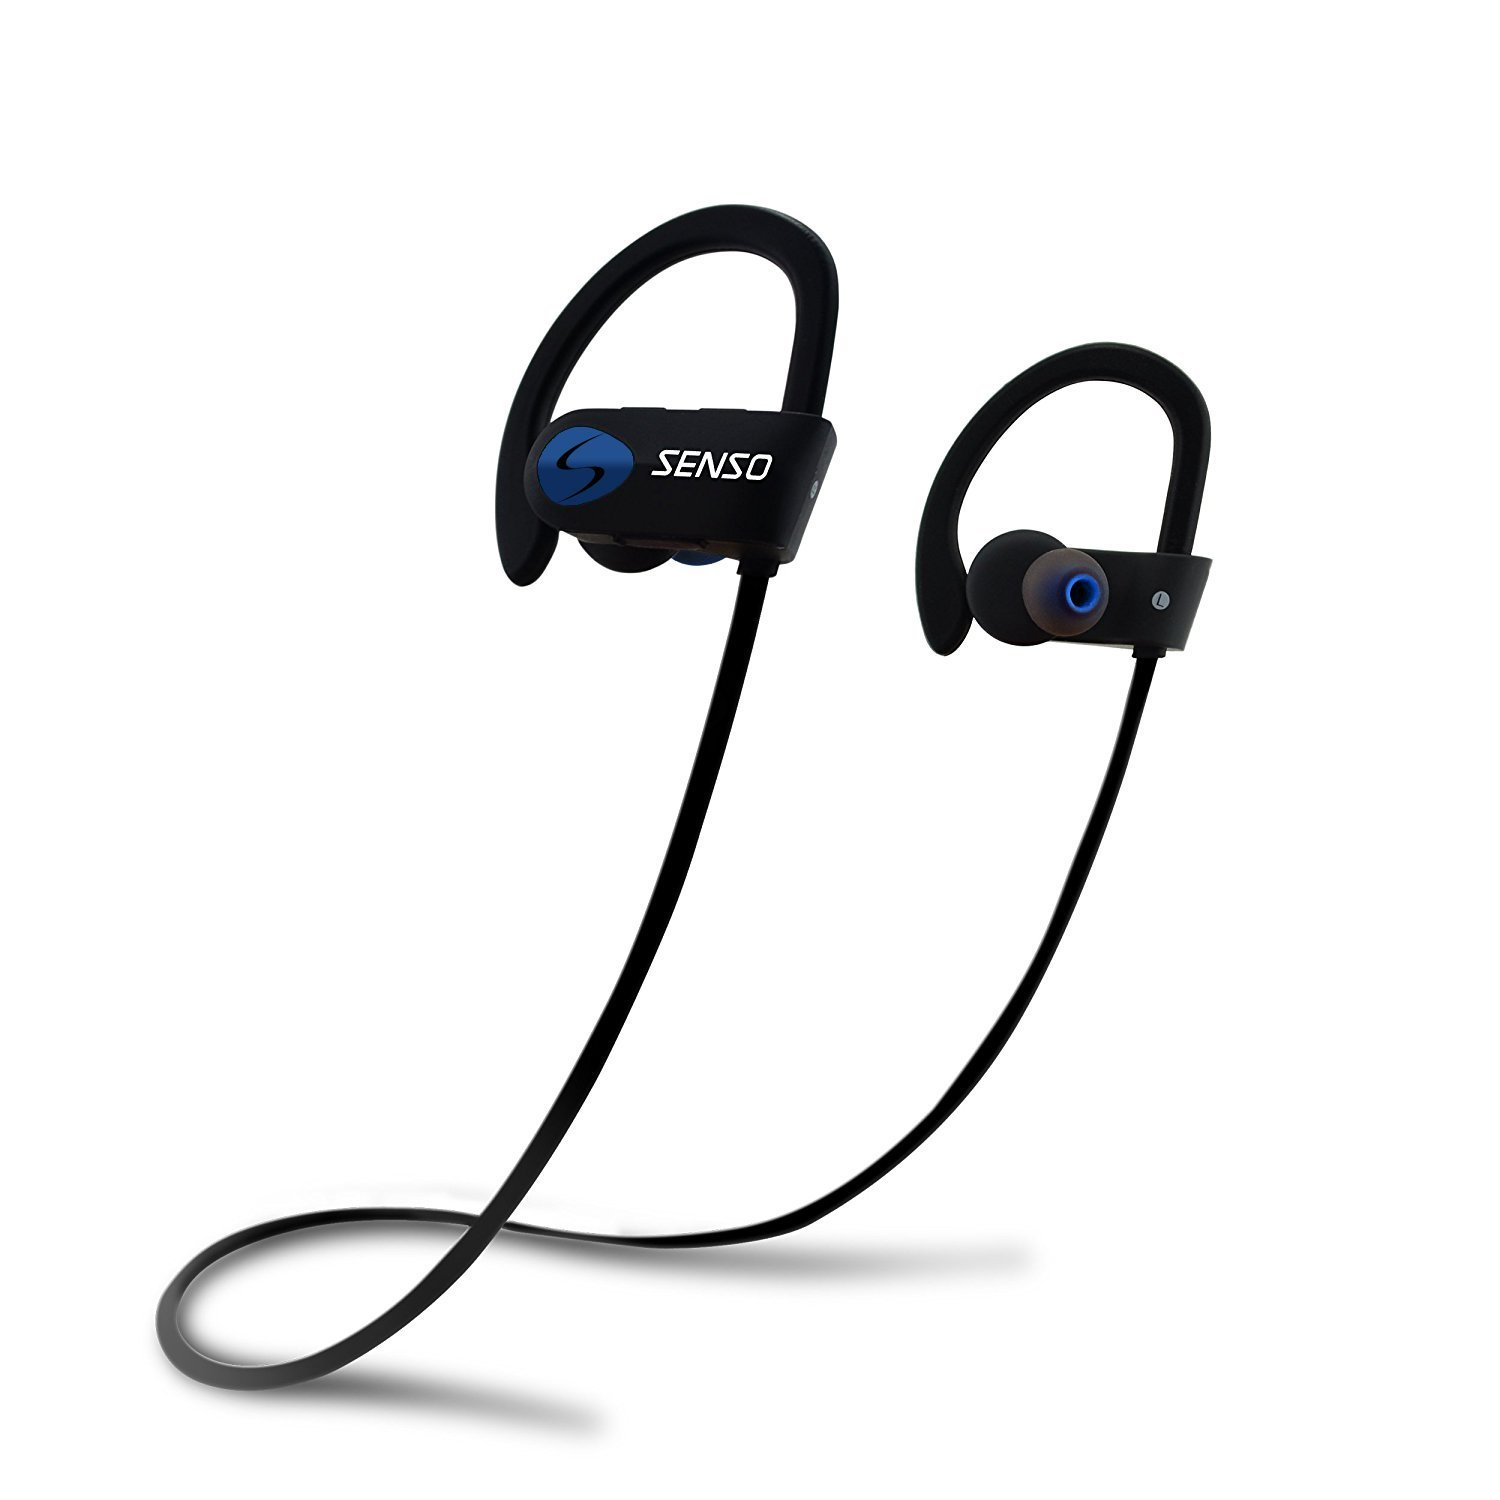 SENSO Bluetooth Headphones, Best Wireless Sports Earphones w/Mic IPX7 Waterproof HD Stereo Sweatproof Earbuds for Gym Running Workout 8 Hour Battery Noise Cancelling Headsets (Blue)